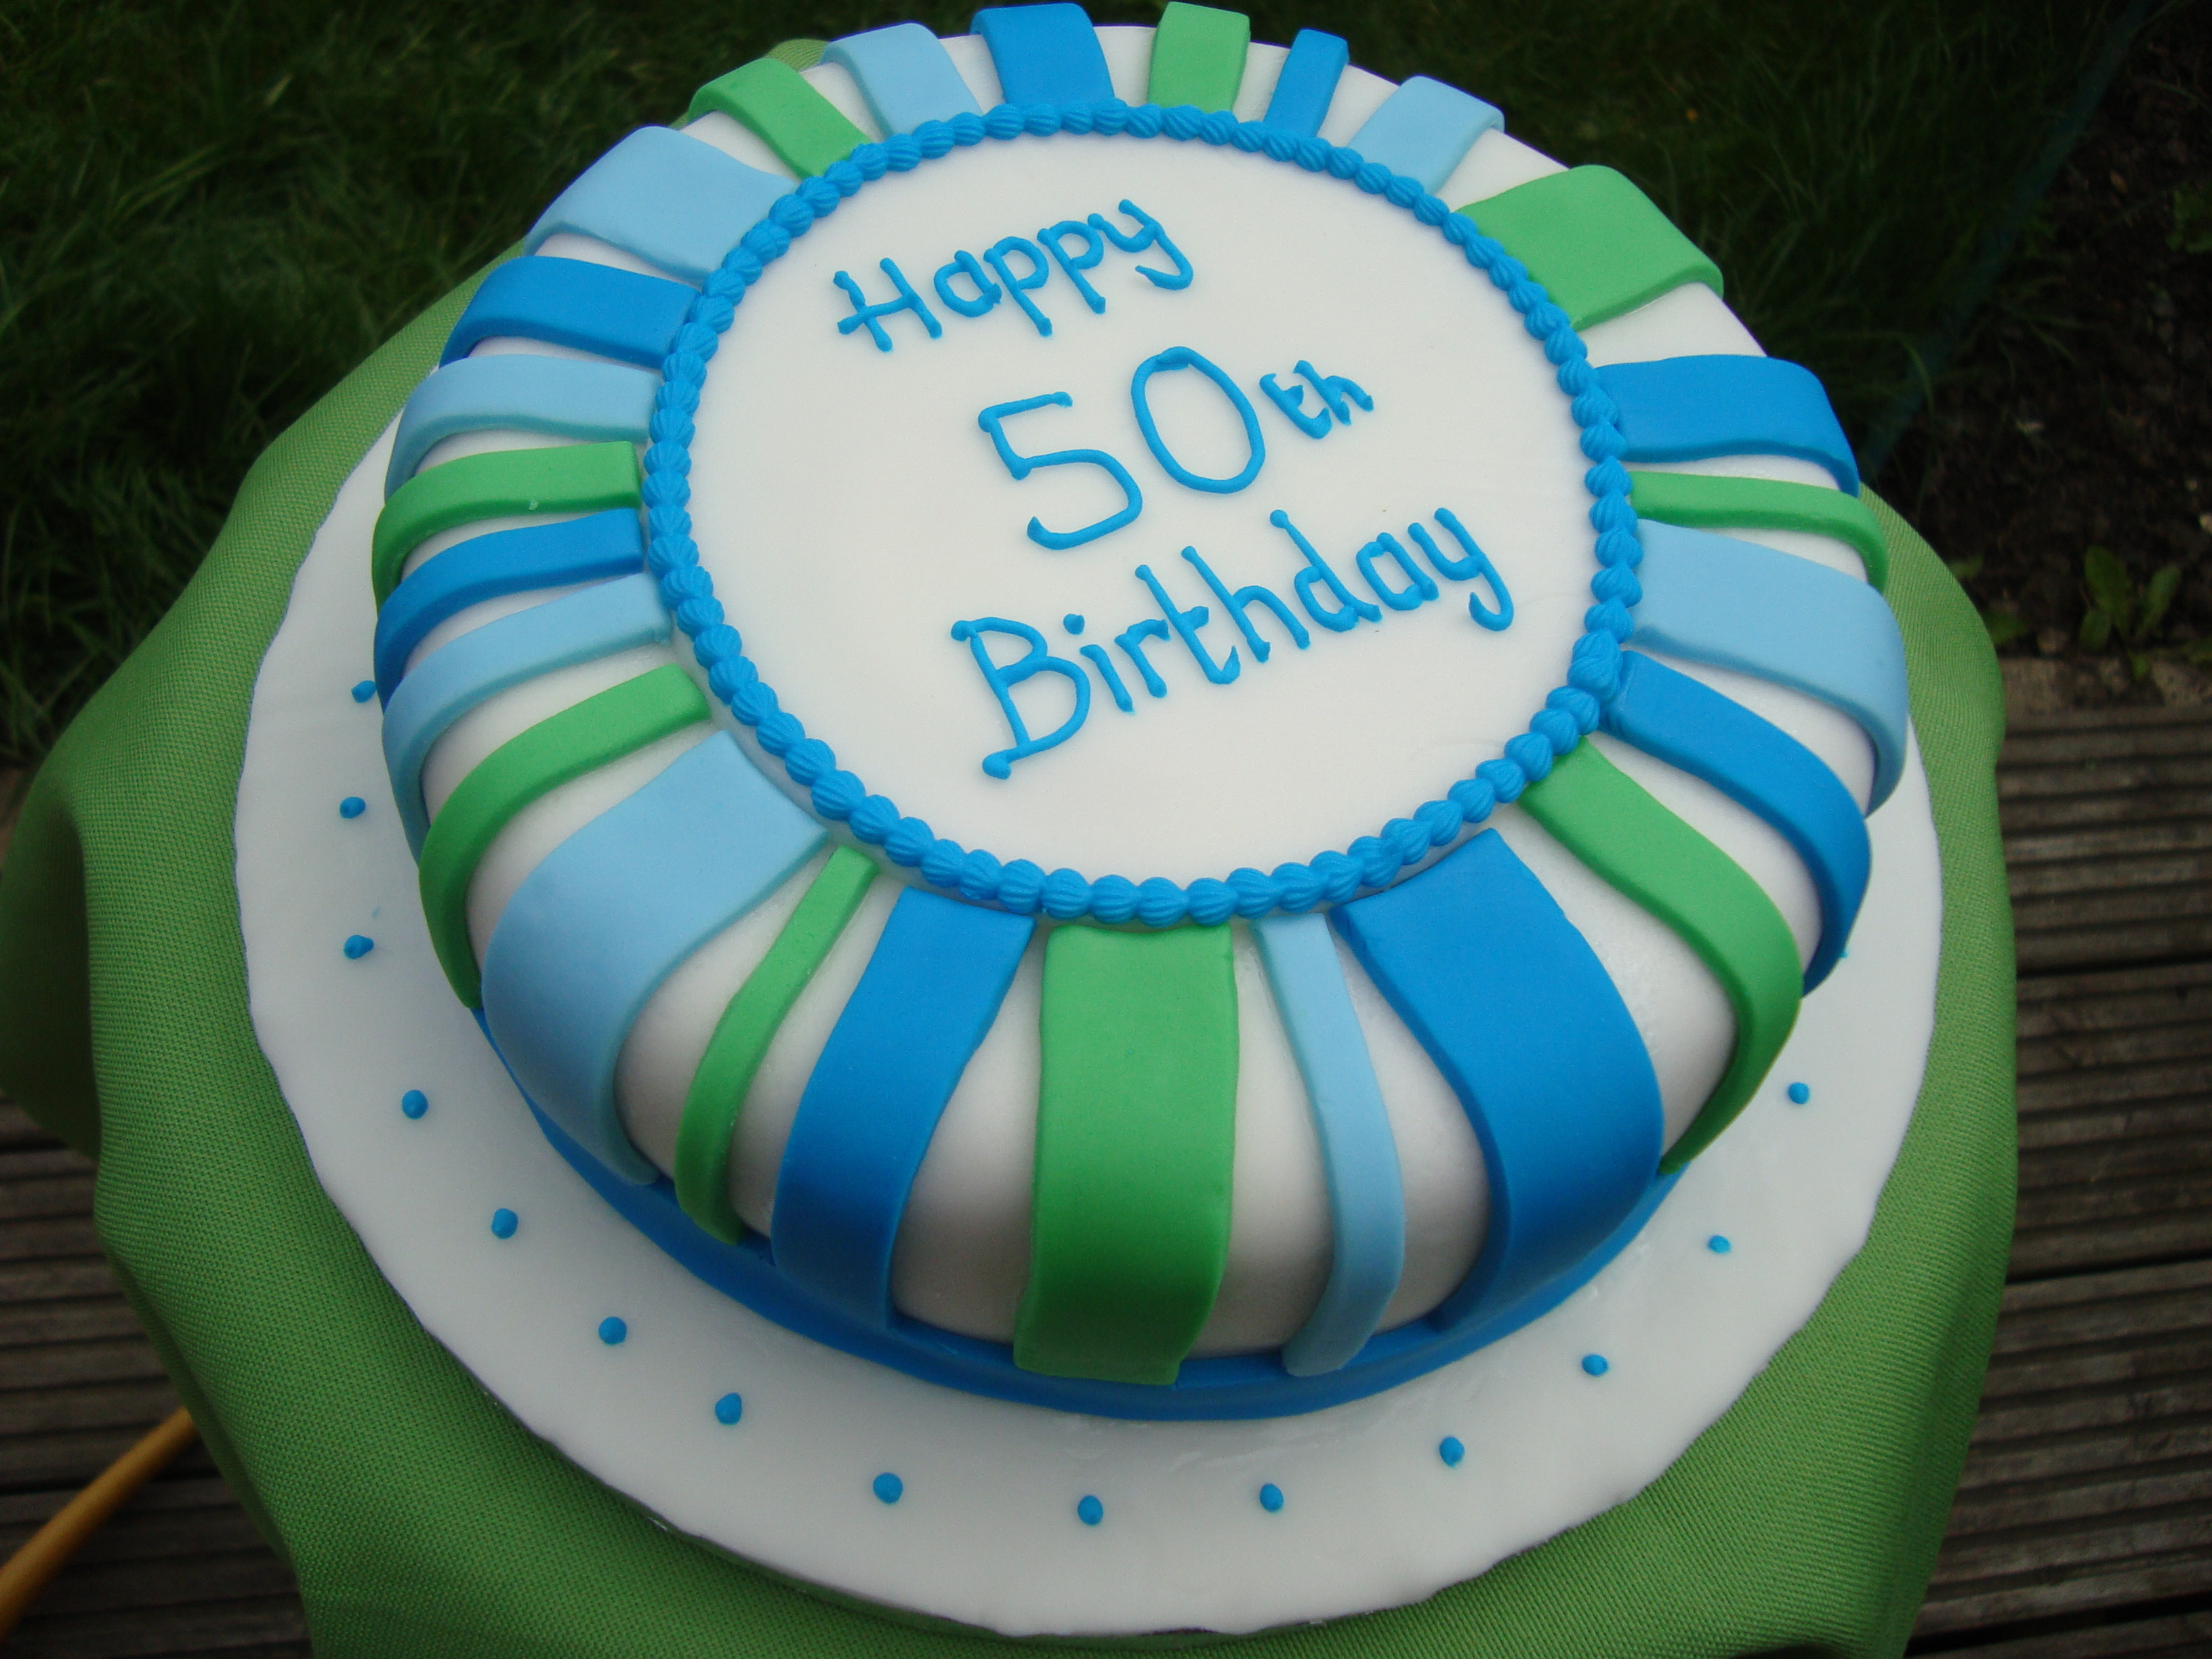 Birthday Cakes Recipe For Girls Boys Form Men Images With Candles KIds Women Pictures Names PIcs